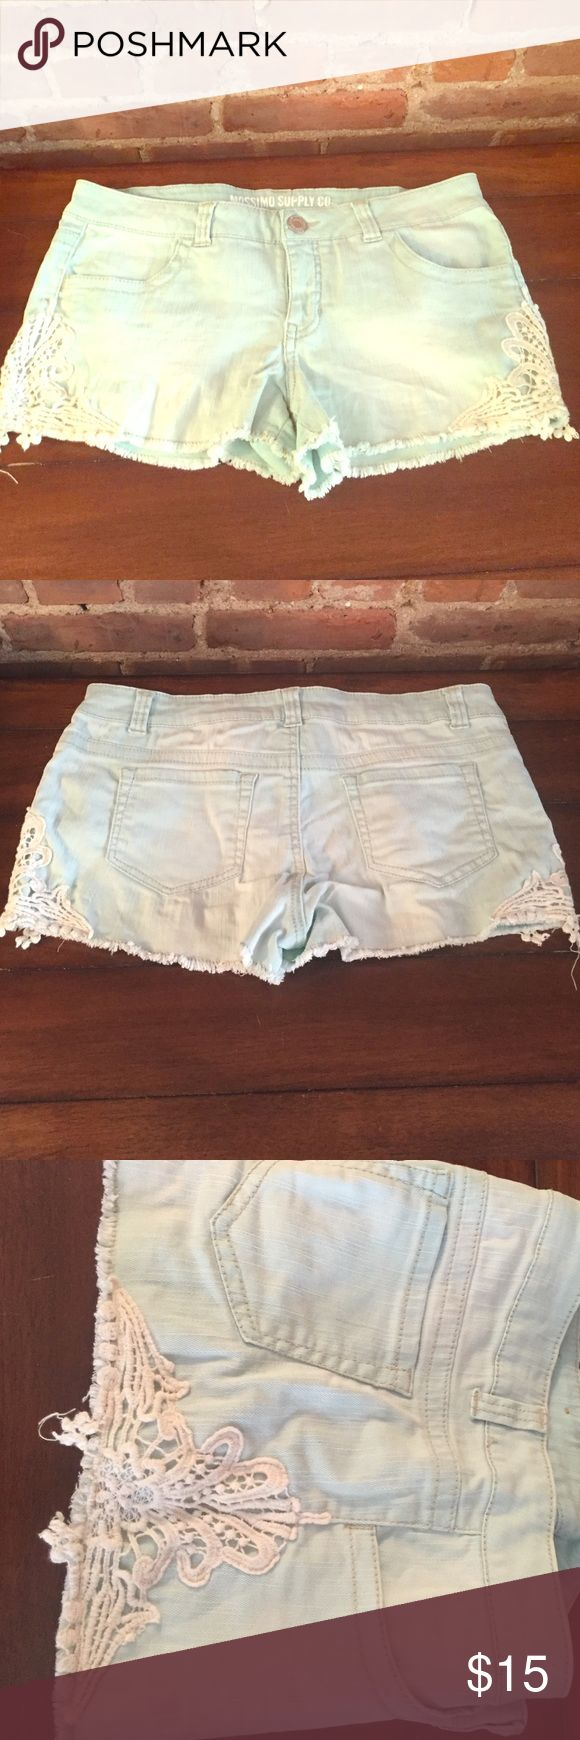 Mossimo Aqua Jean Shorts with Lace Detail These light aqua colored shorts have washing/distressing and super cute lacey detailing on the sides Mossimo Supply Co. Shorts Jean Shorts